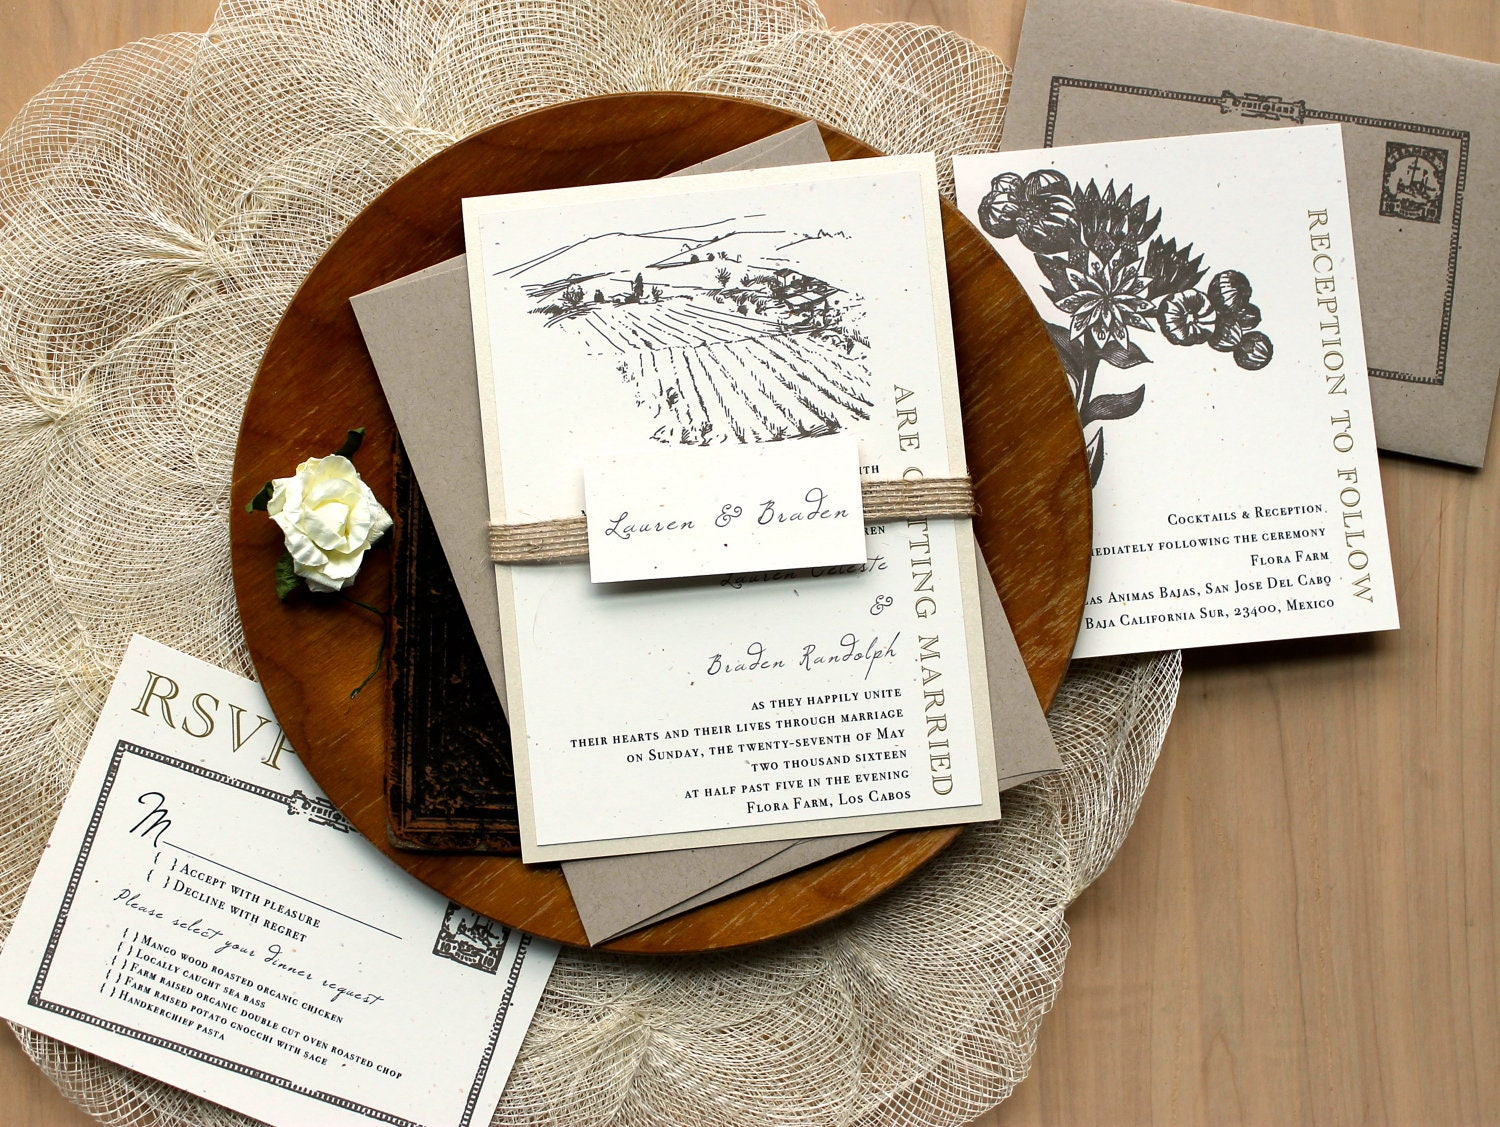 Wedding Invitations With Burlap: Rustic Burlap Wedding Invites As Seen In The Meryl Streep